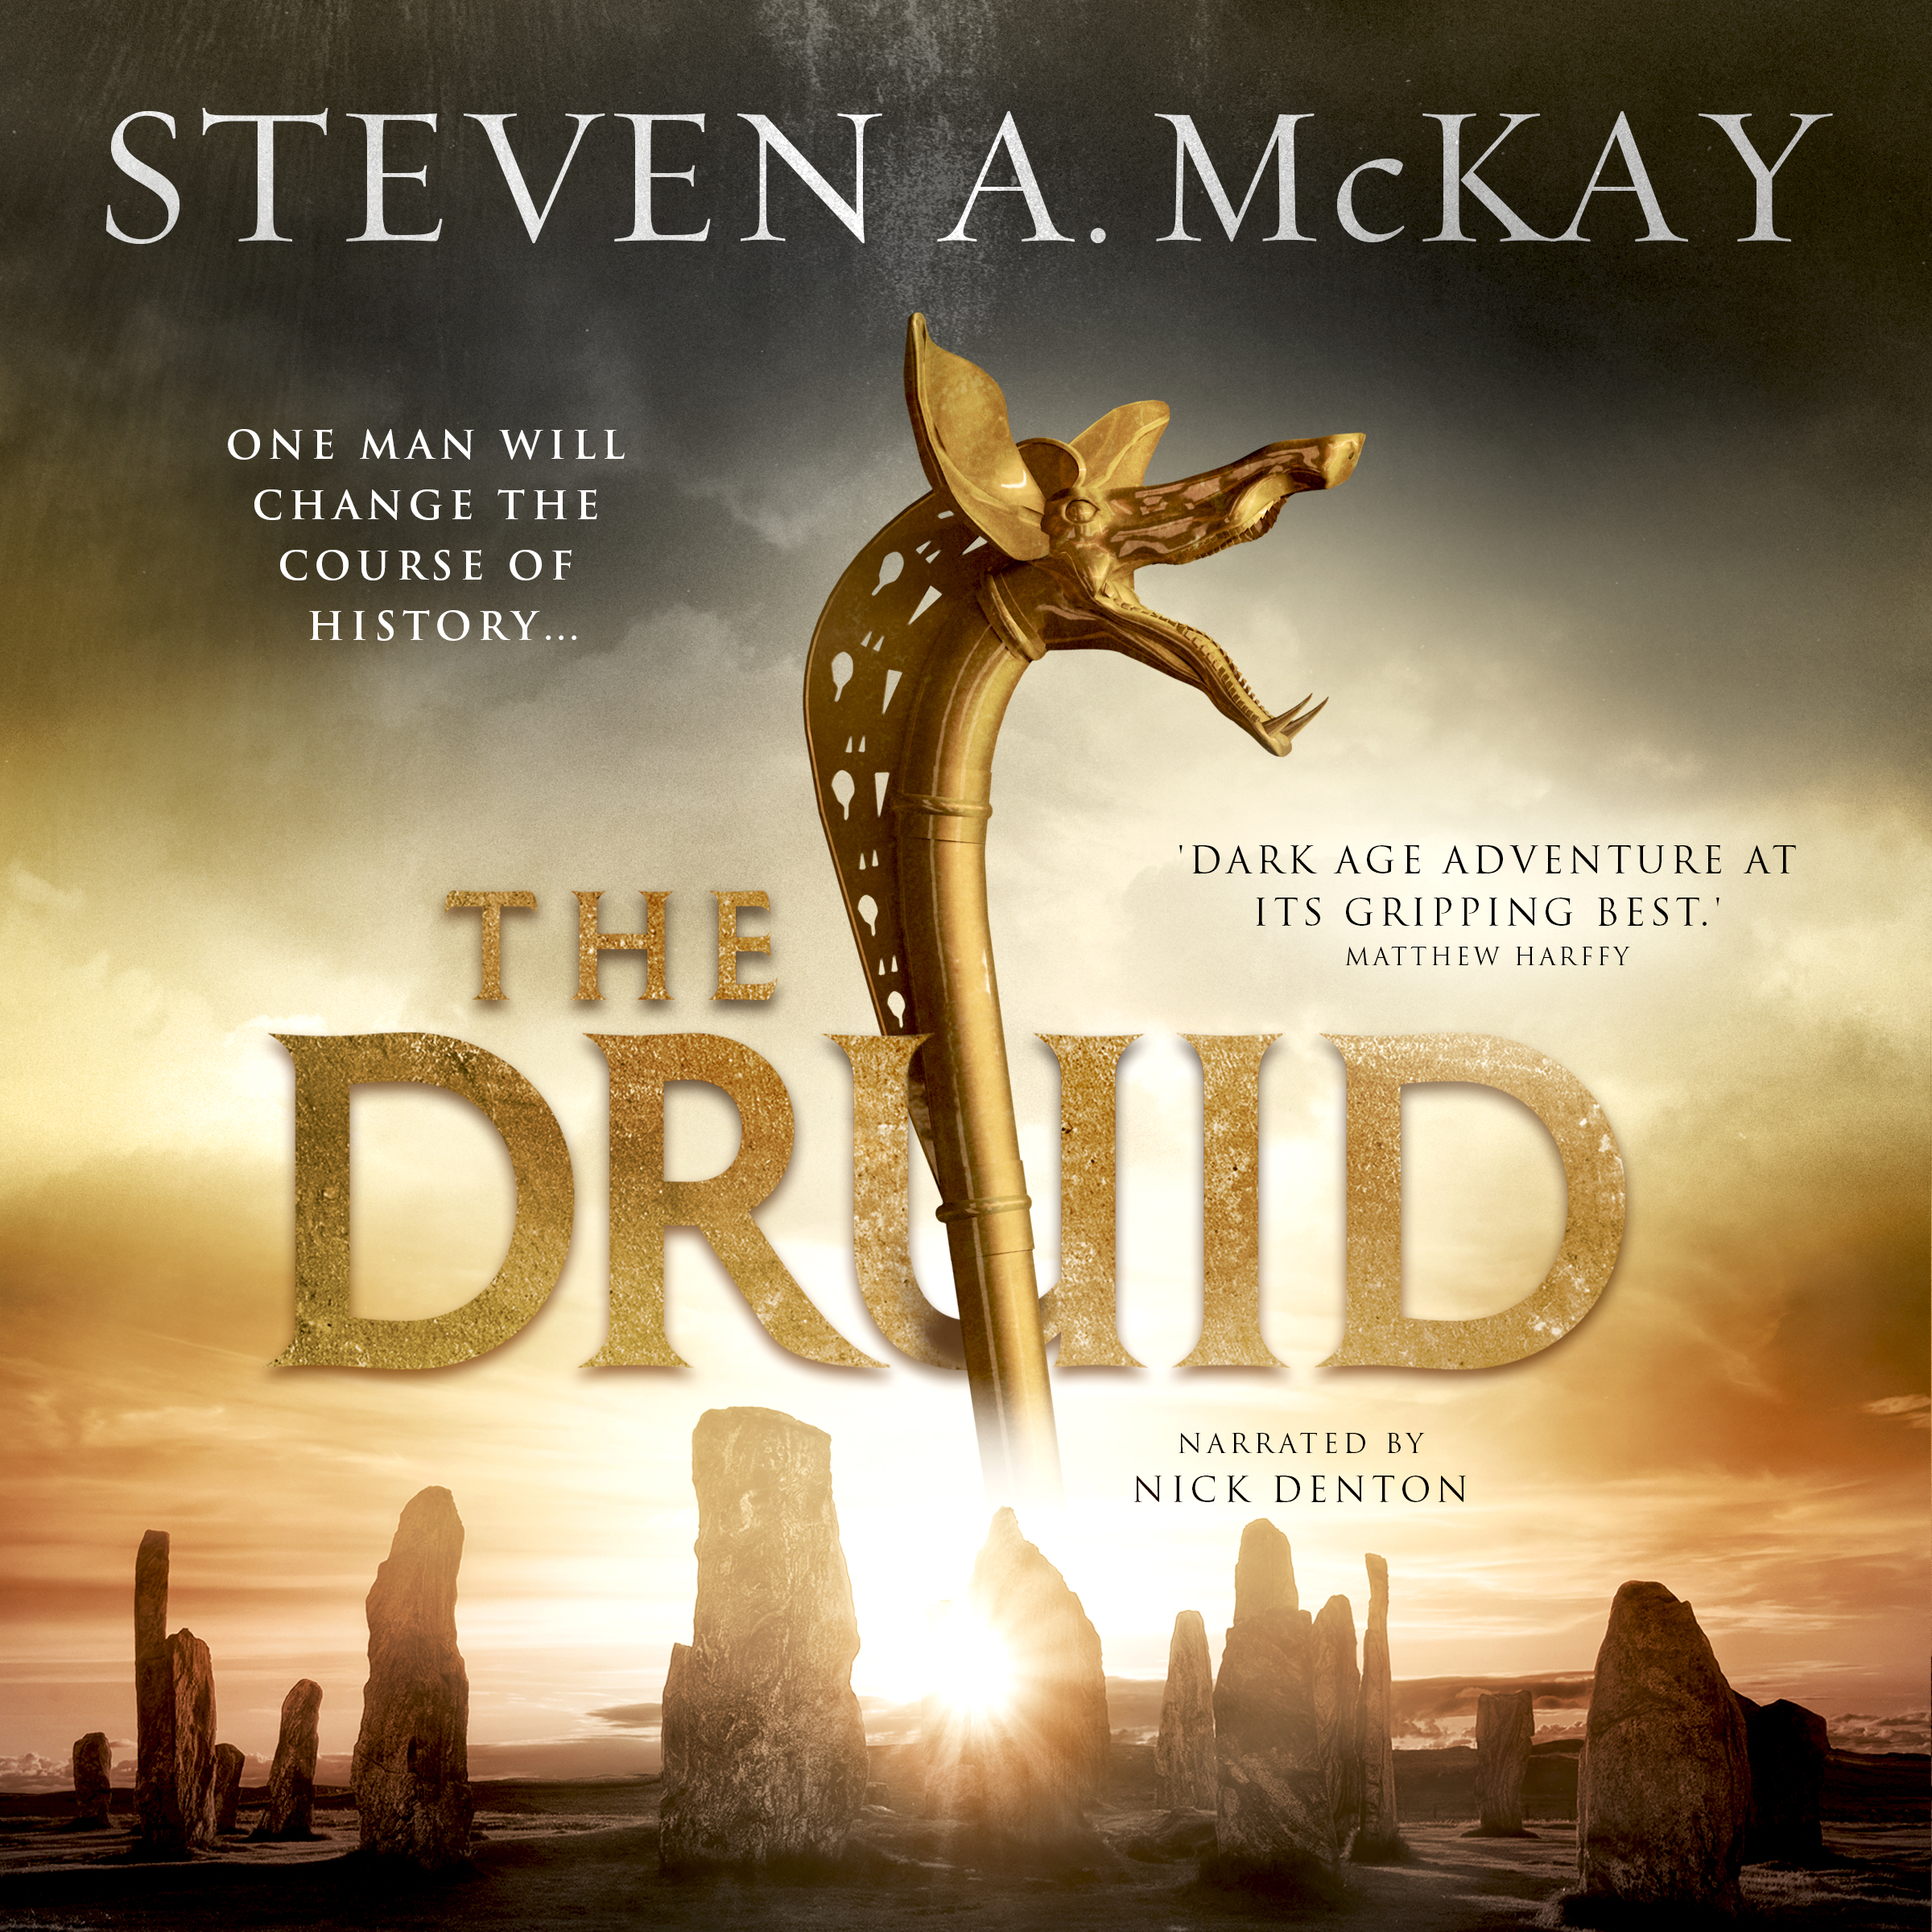 THE DRUID audiobook – cover reveal! – STEVEN A  McKAY